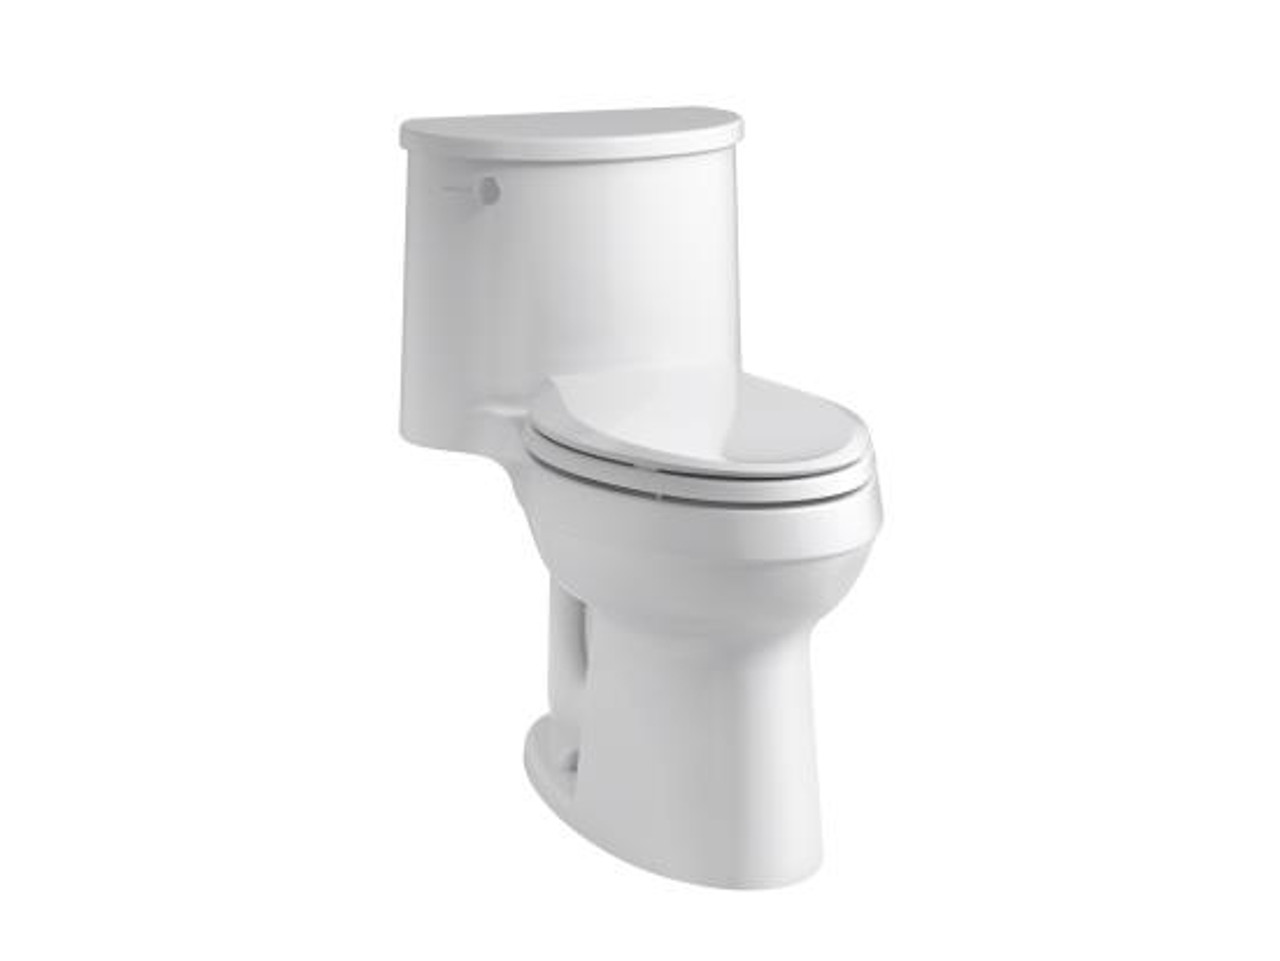 Kohler Adair Comfort Height One Piece Elongated 1 28 Gpf Toilet With Class Five Flushing Technology And Left Hand Trip Lever Royal Bath Place